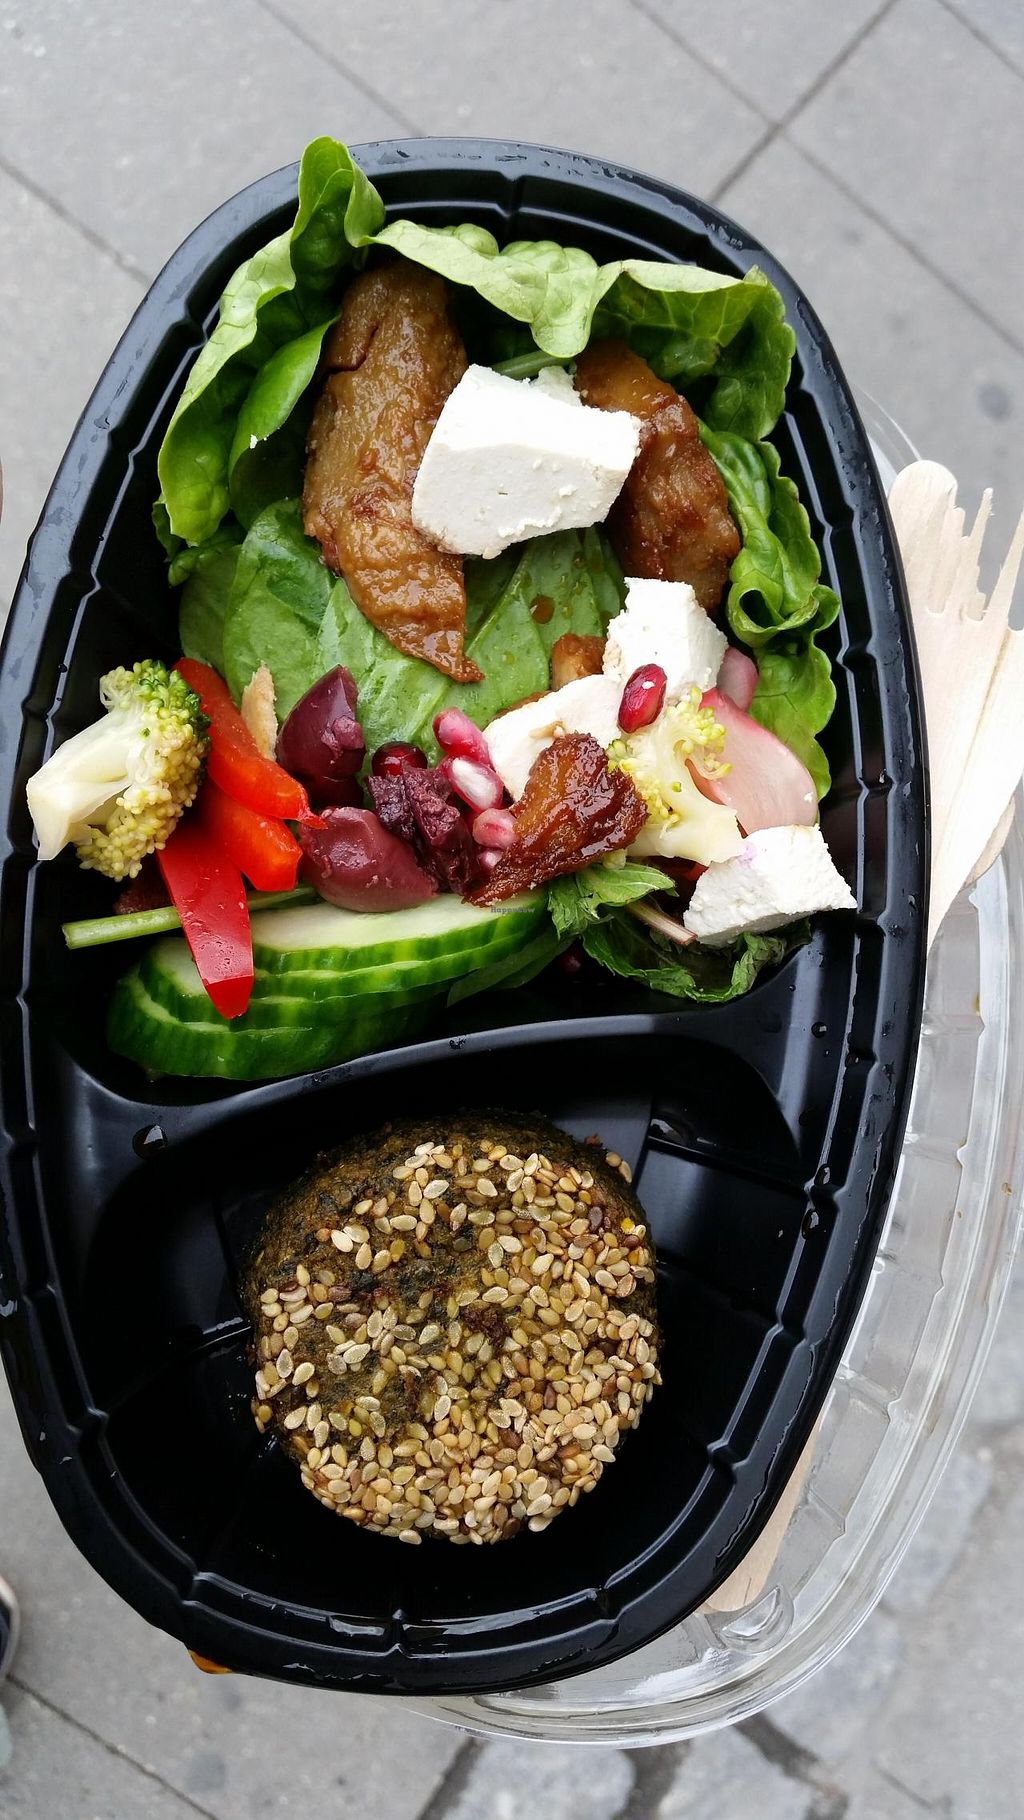 """Photo of CLOSED: Astrid och Aporna - Cph  by <a href=""""/members/profile/konlish"""">konlish</a> <br/>Pretty good chicken and feta cheese salad <br/> May 21, 2015  - <a href='/contact/abuse/image/54710/102984'>Report</a>"""